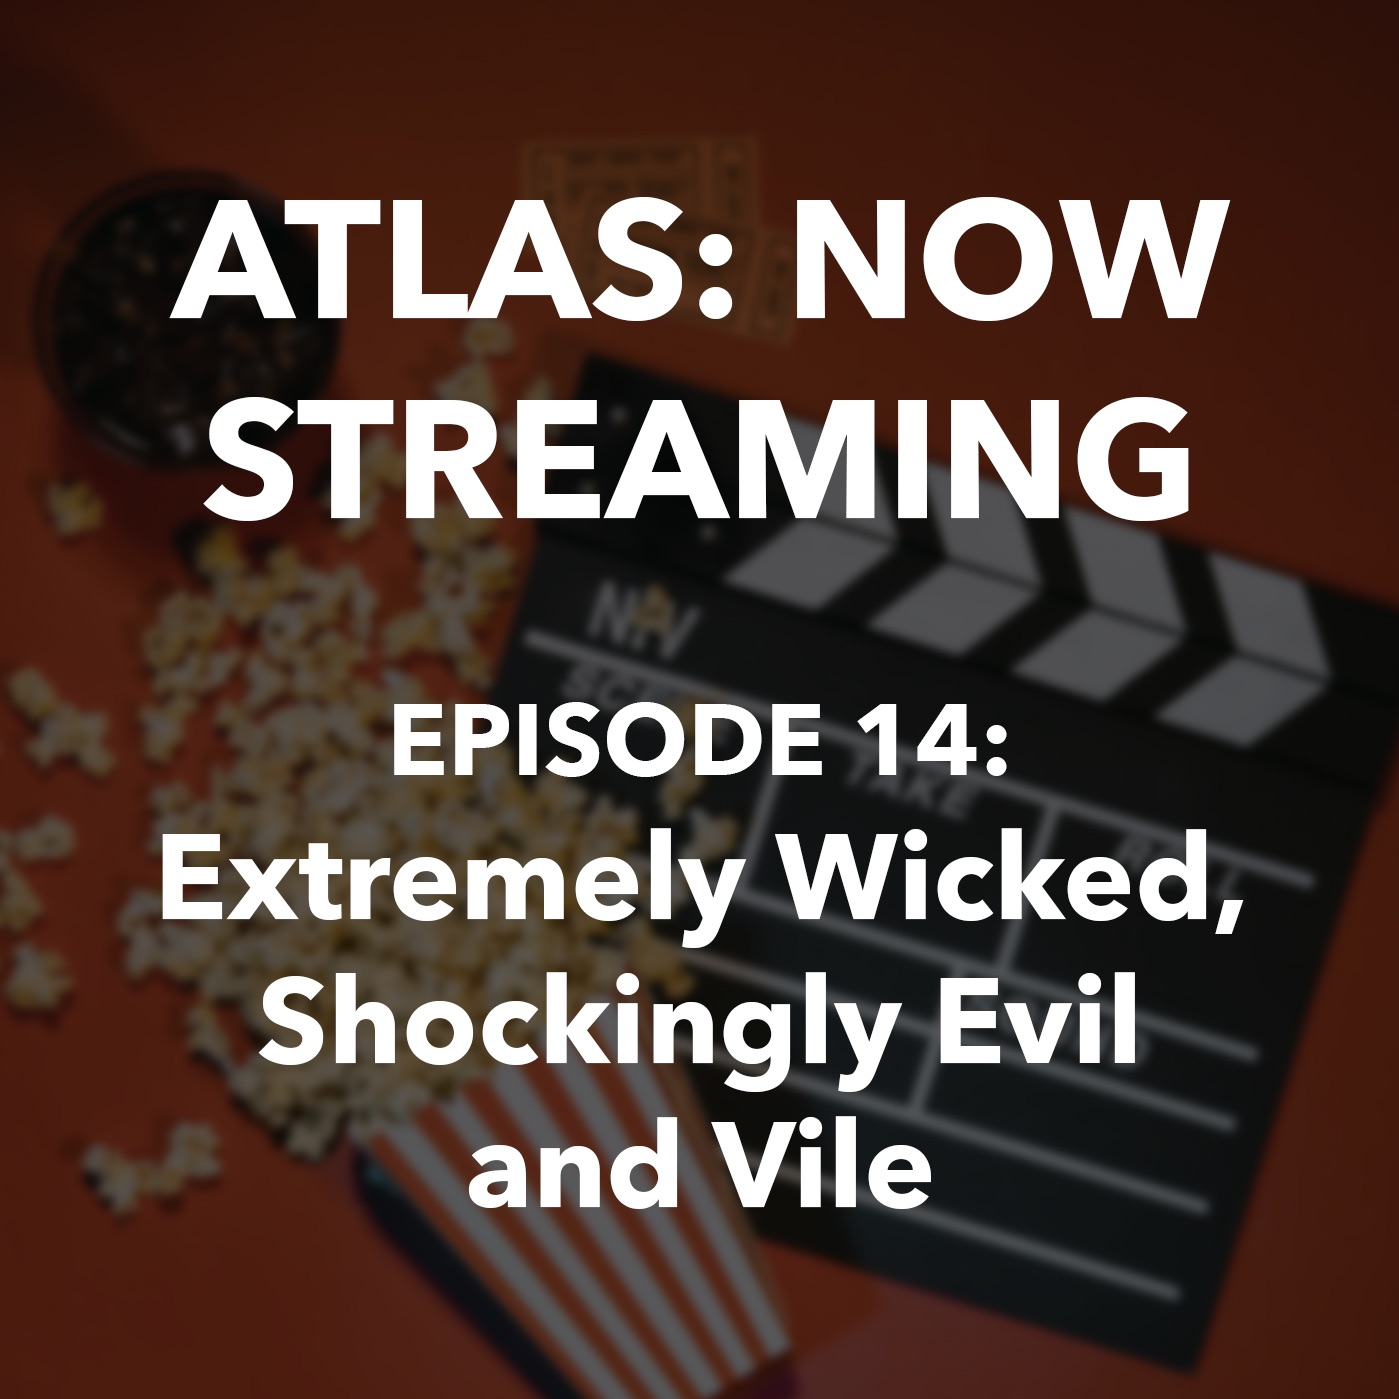 Atlas: Now Streaming Episode 14 - Extremely Wicked, Shockingly Evil and Vile